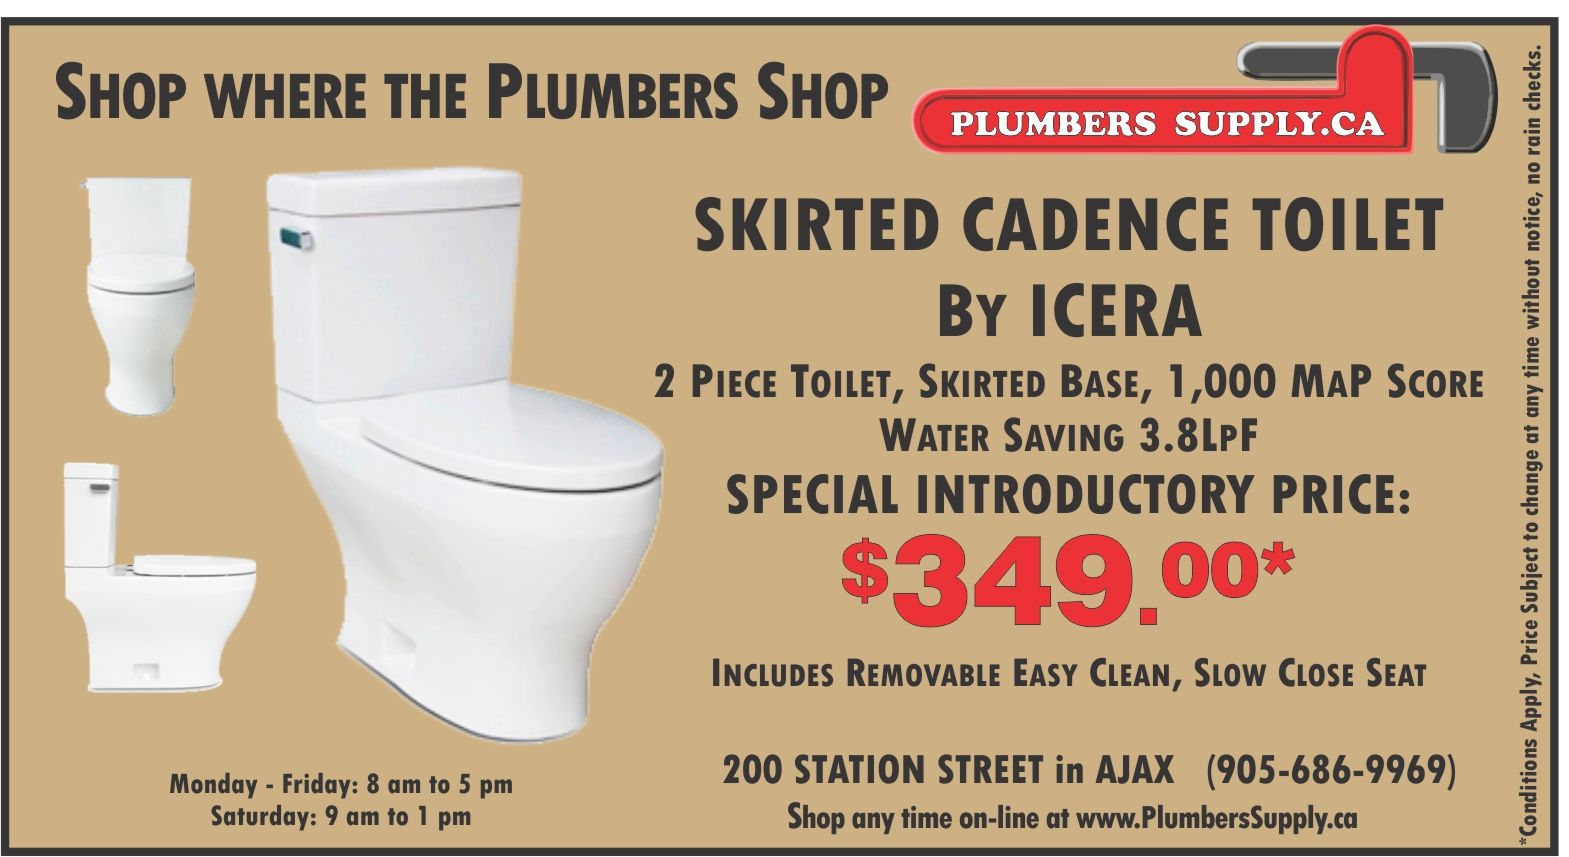 JUST ARRIVED!!! Skirted 2 piece toilets with AMAZING 3.8LPF flush Capability!  Be quick - we will sell out of this introductory price units fast!   CADENCE BY ICERA, 1,000 MaP Score, at only 3,8LpF,  Introductory Price $349.00